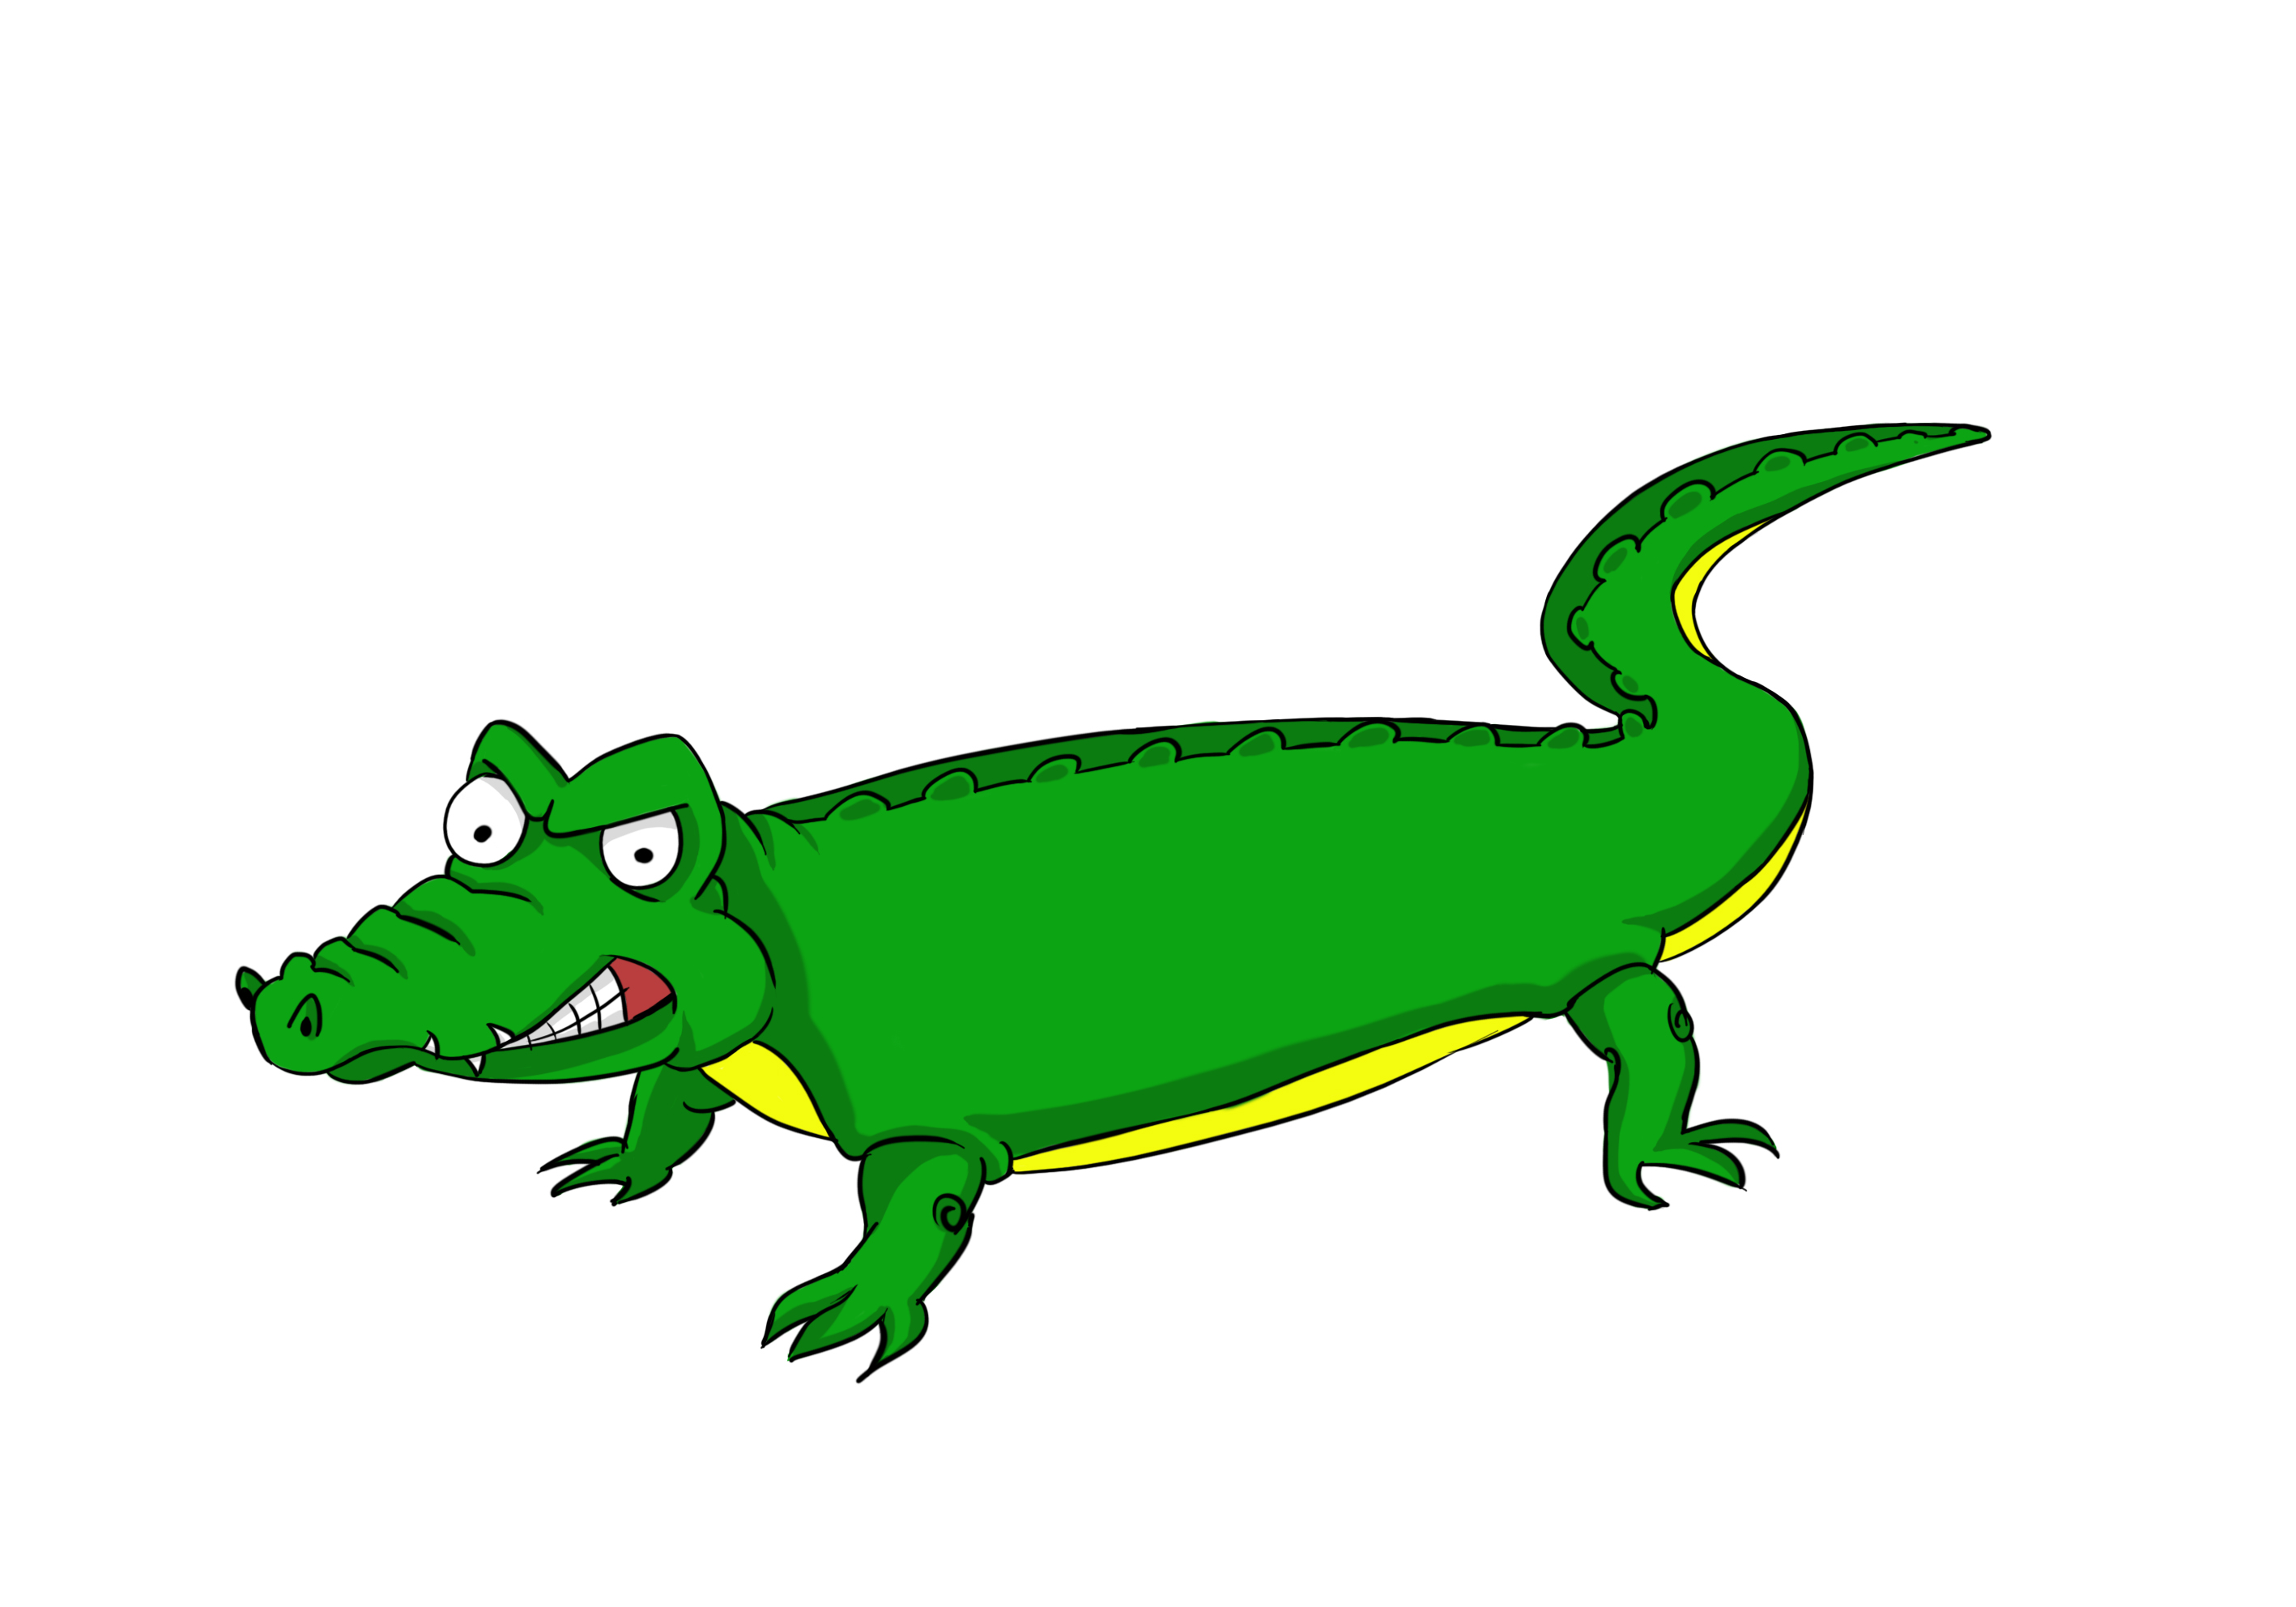 Alligator clip art free clipart cliparts for you.